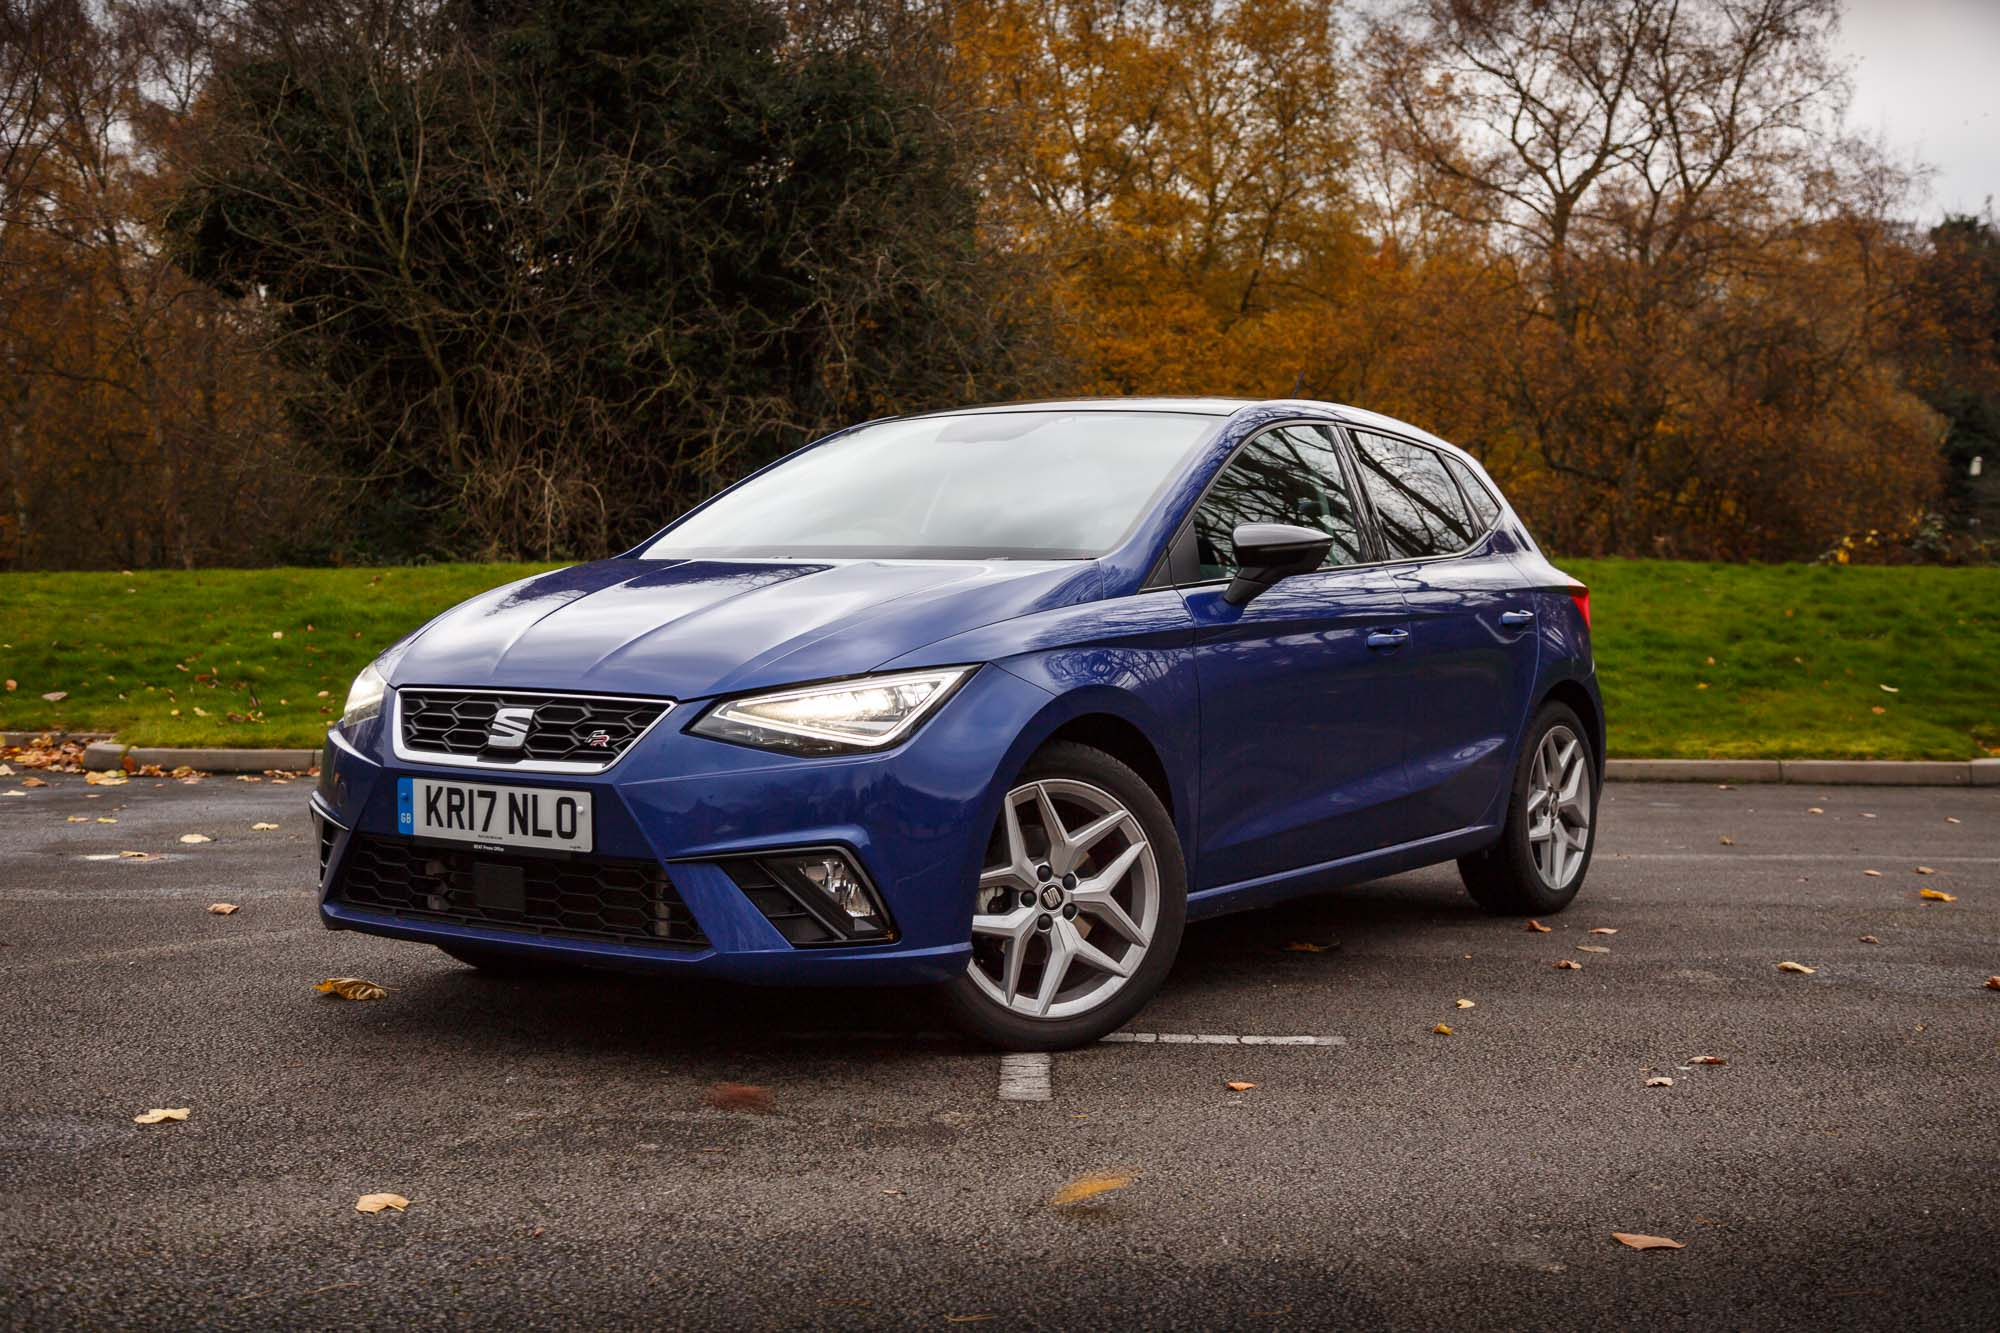 seat ibiza fr review 2017 price 16 630 1 0 litre 60 1 mpg